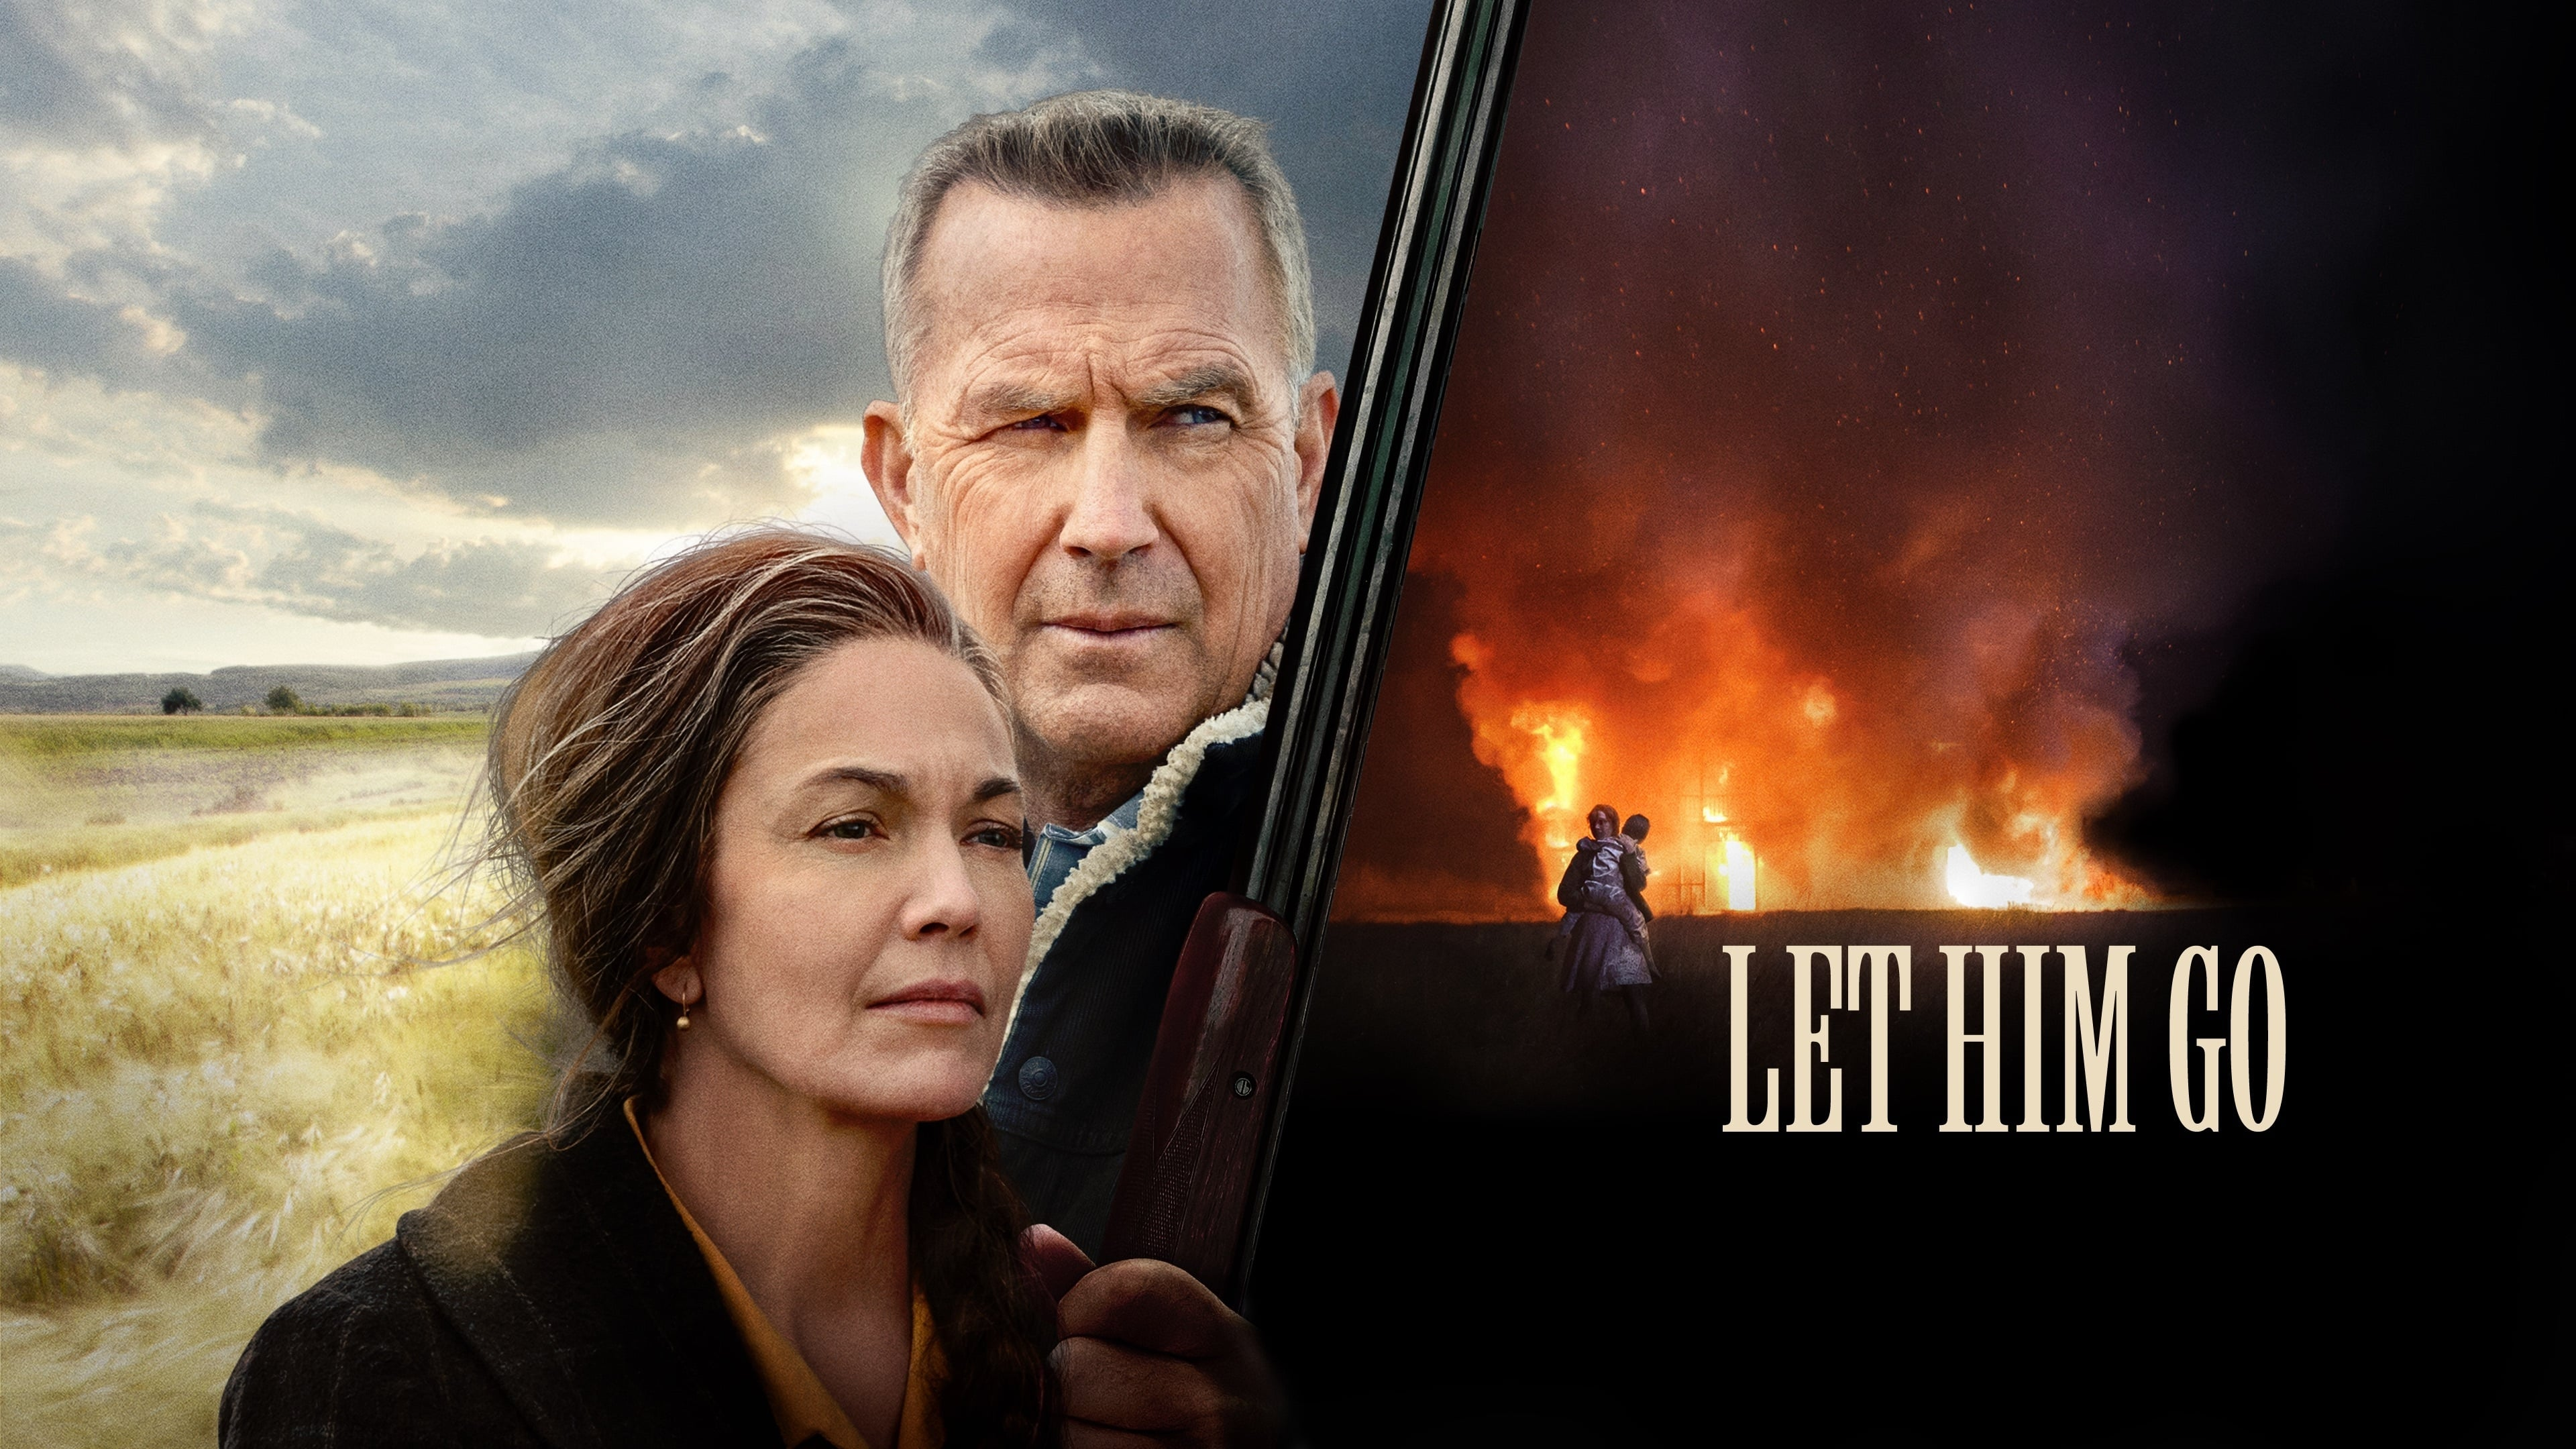 Watch Let Him Go (2020) Full Movie Online Free | Stream Free Movies & TV Shows